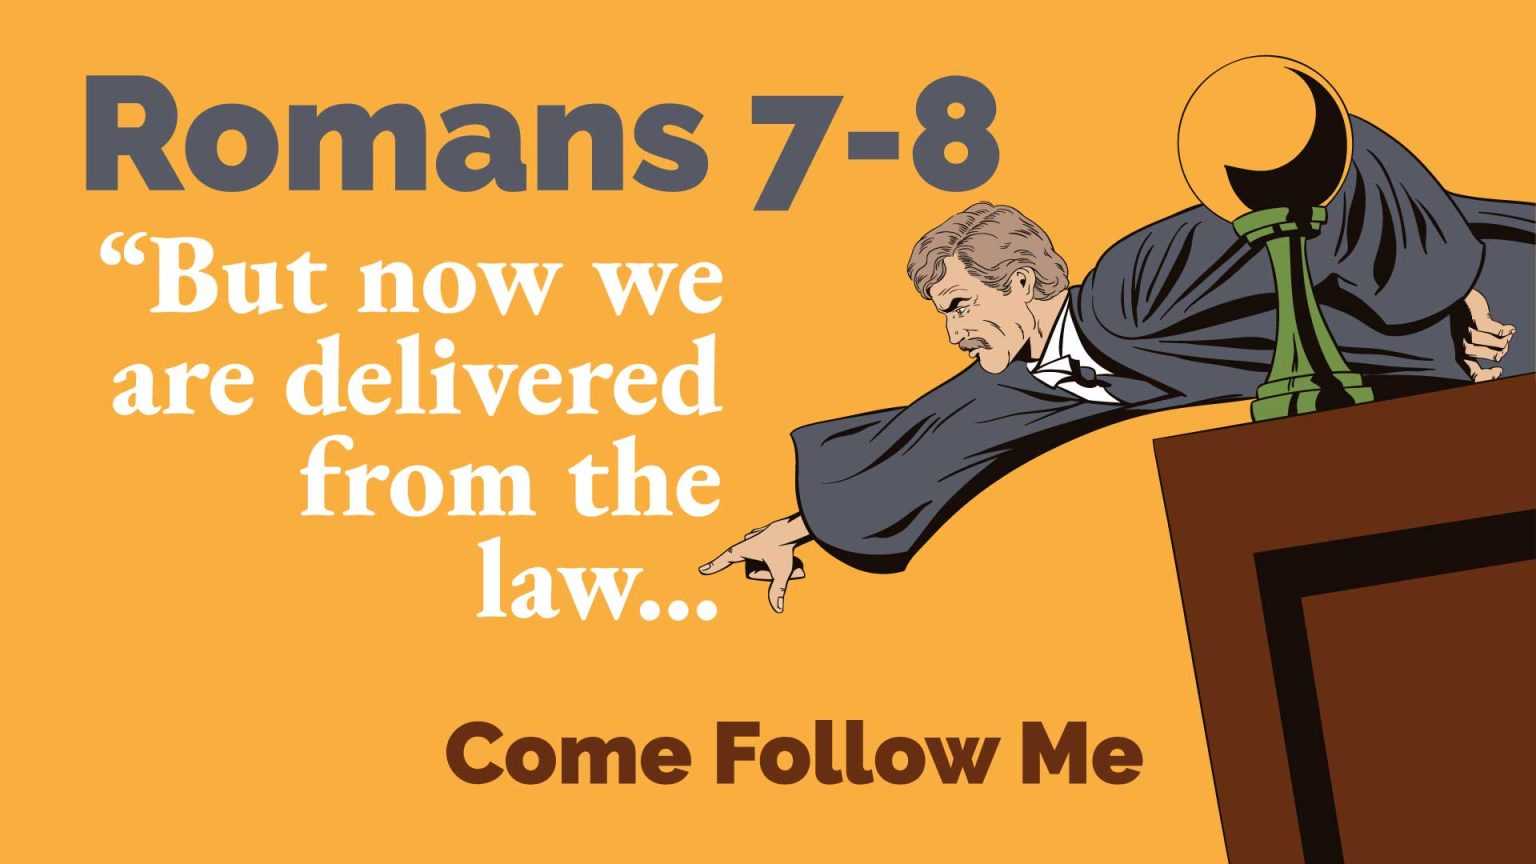 Romans 7-8 – Come Follow Me